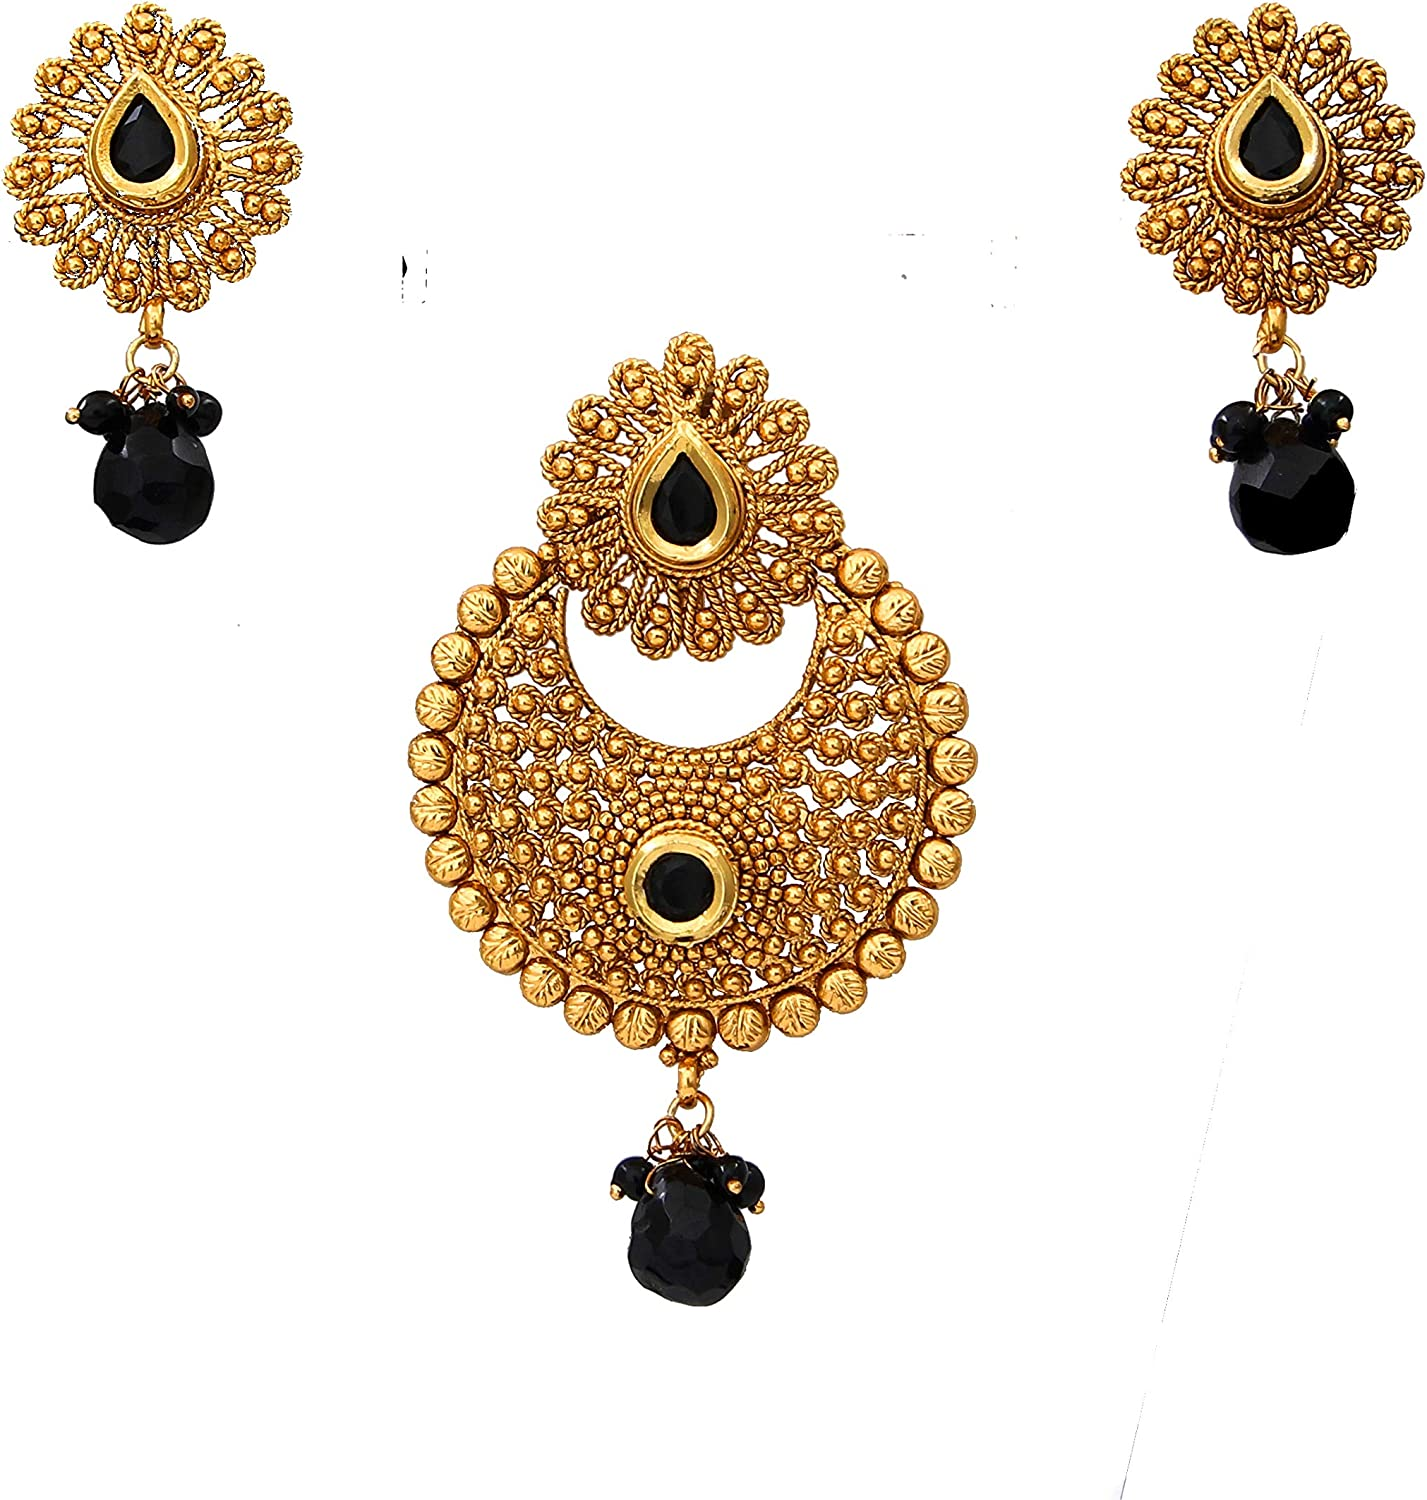 55Carat Women's Fancy Pendant Set Intricately Gold Plated with Modern Ethnic Design Earrings Designer Fashion Collection Jewellery Gift for Wife Sister Mother